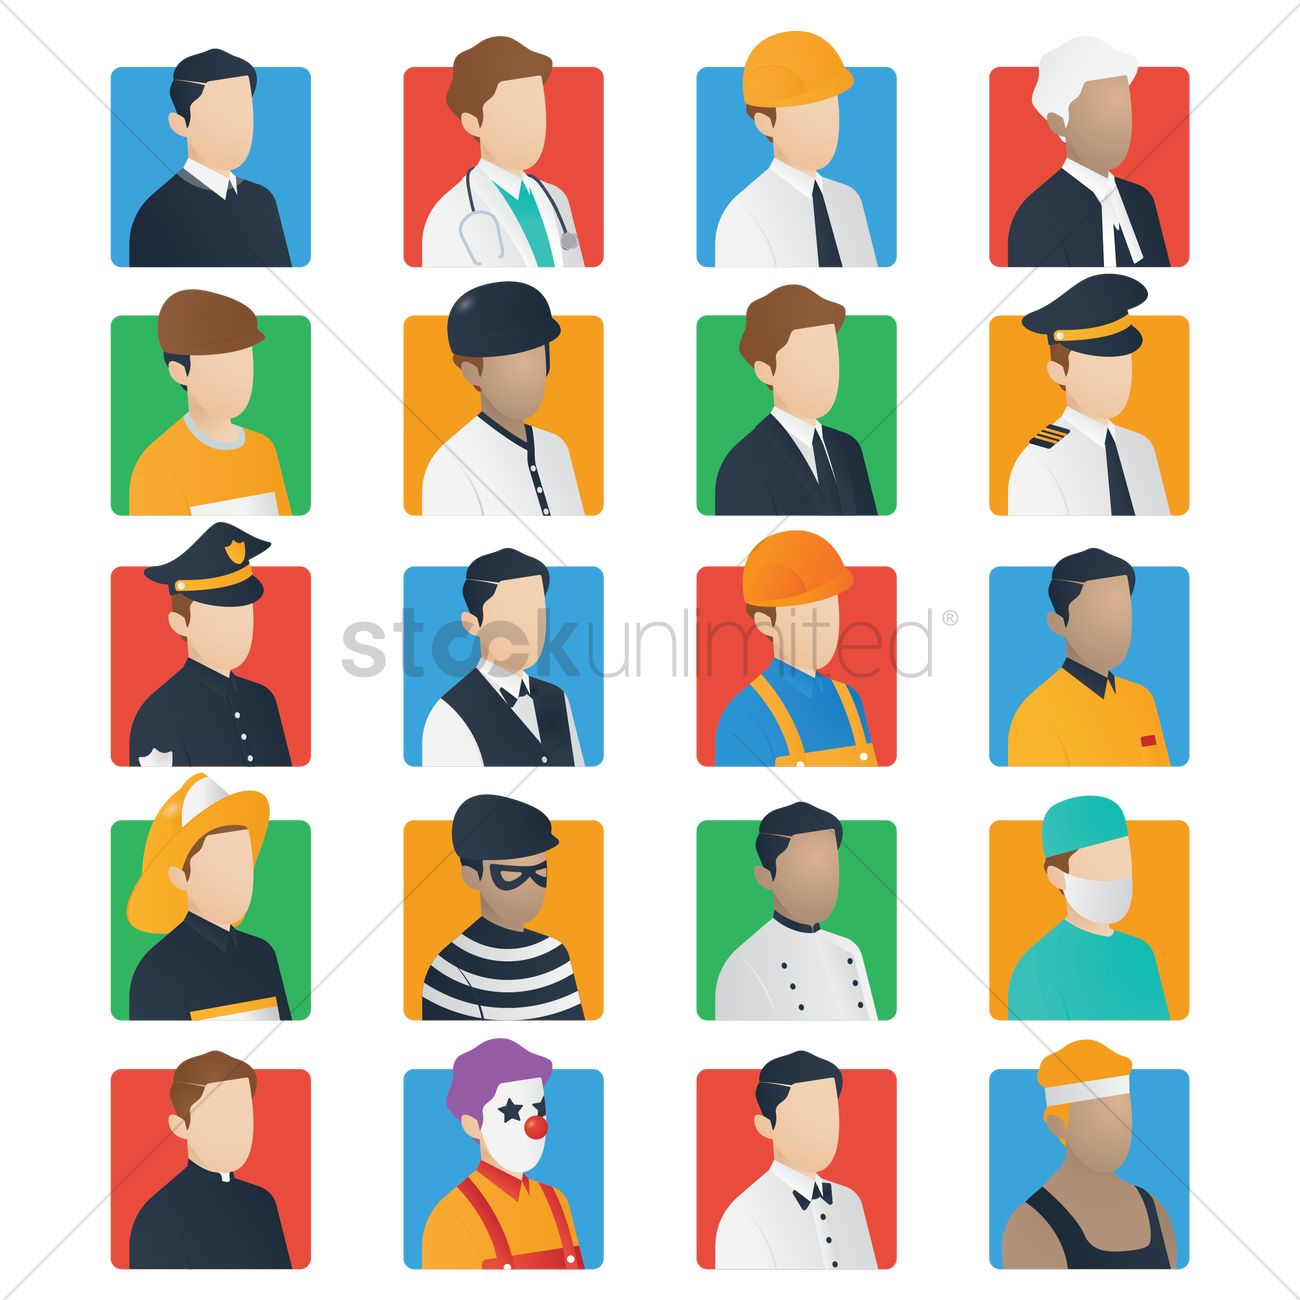 Set of job icons Vector Image - 1567082 | StockUnlimited